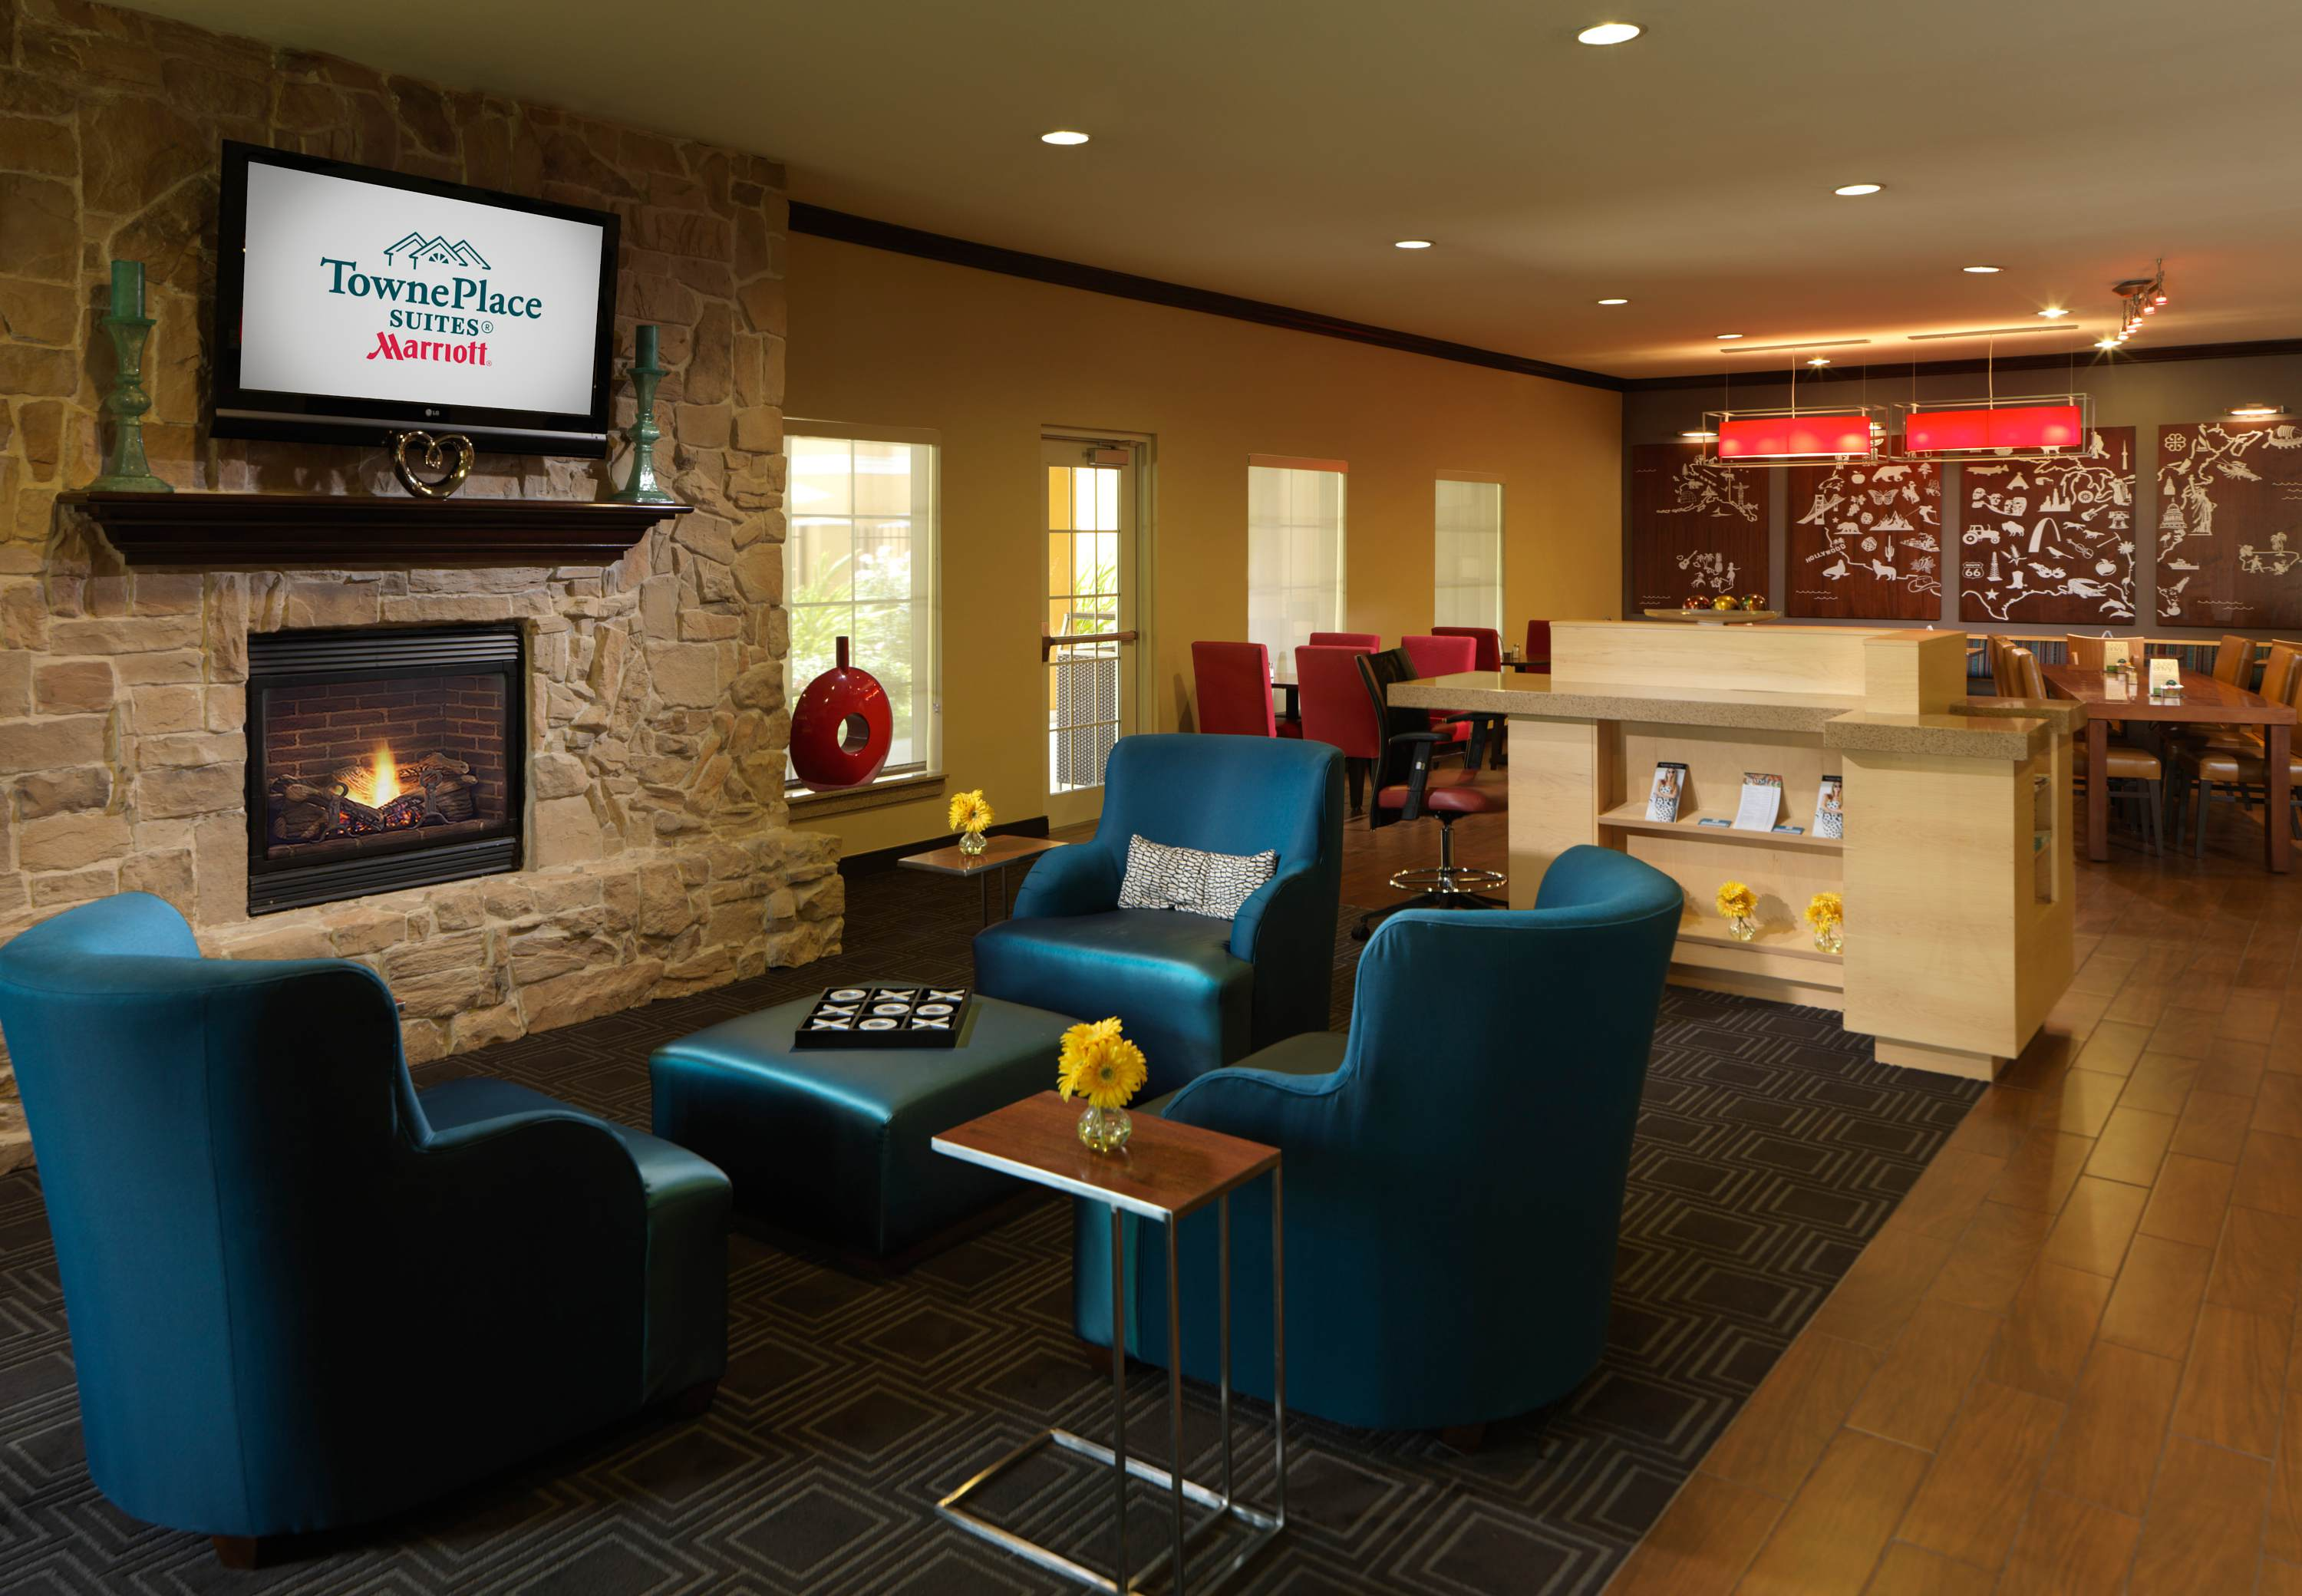 TownePlace Suites by Marriott Houston North/Shenandoah image 0